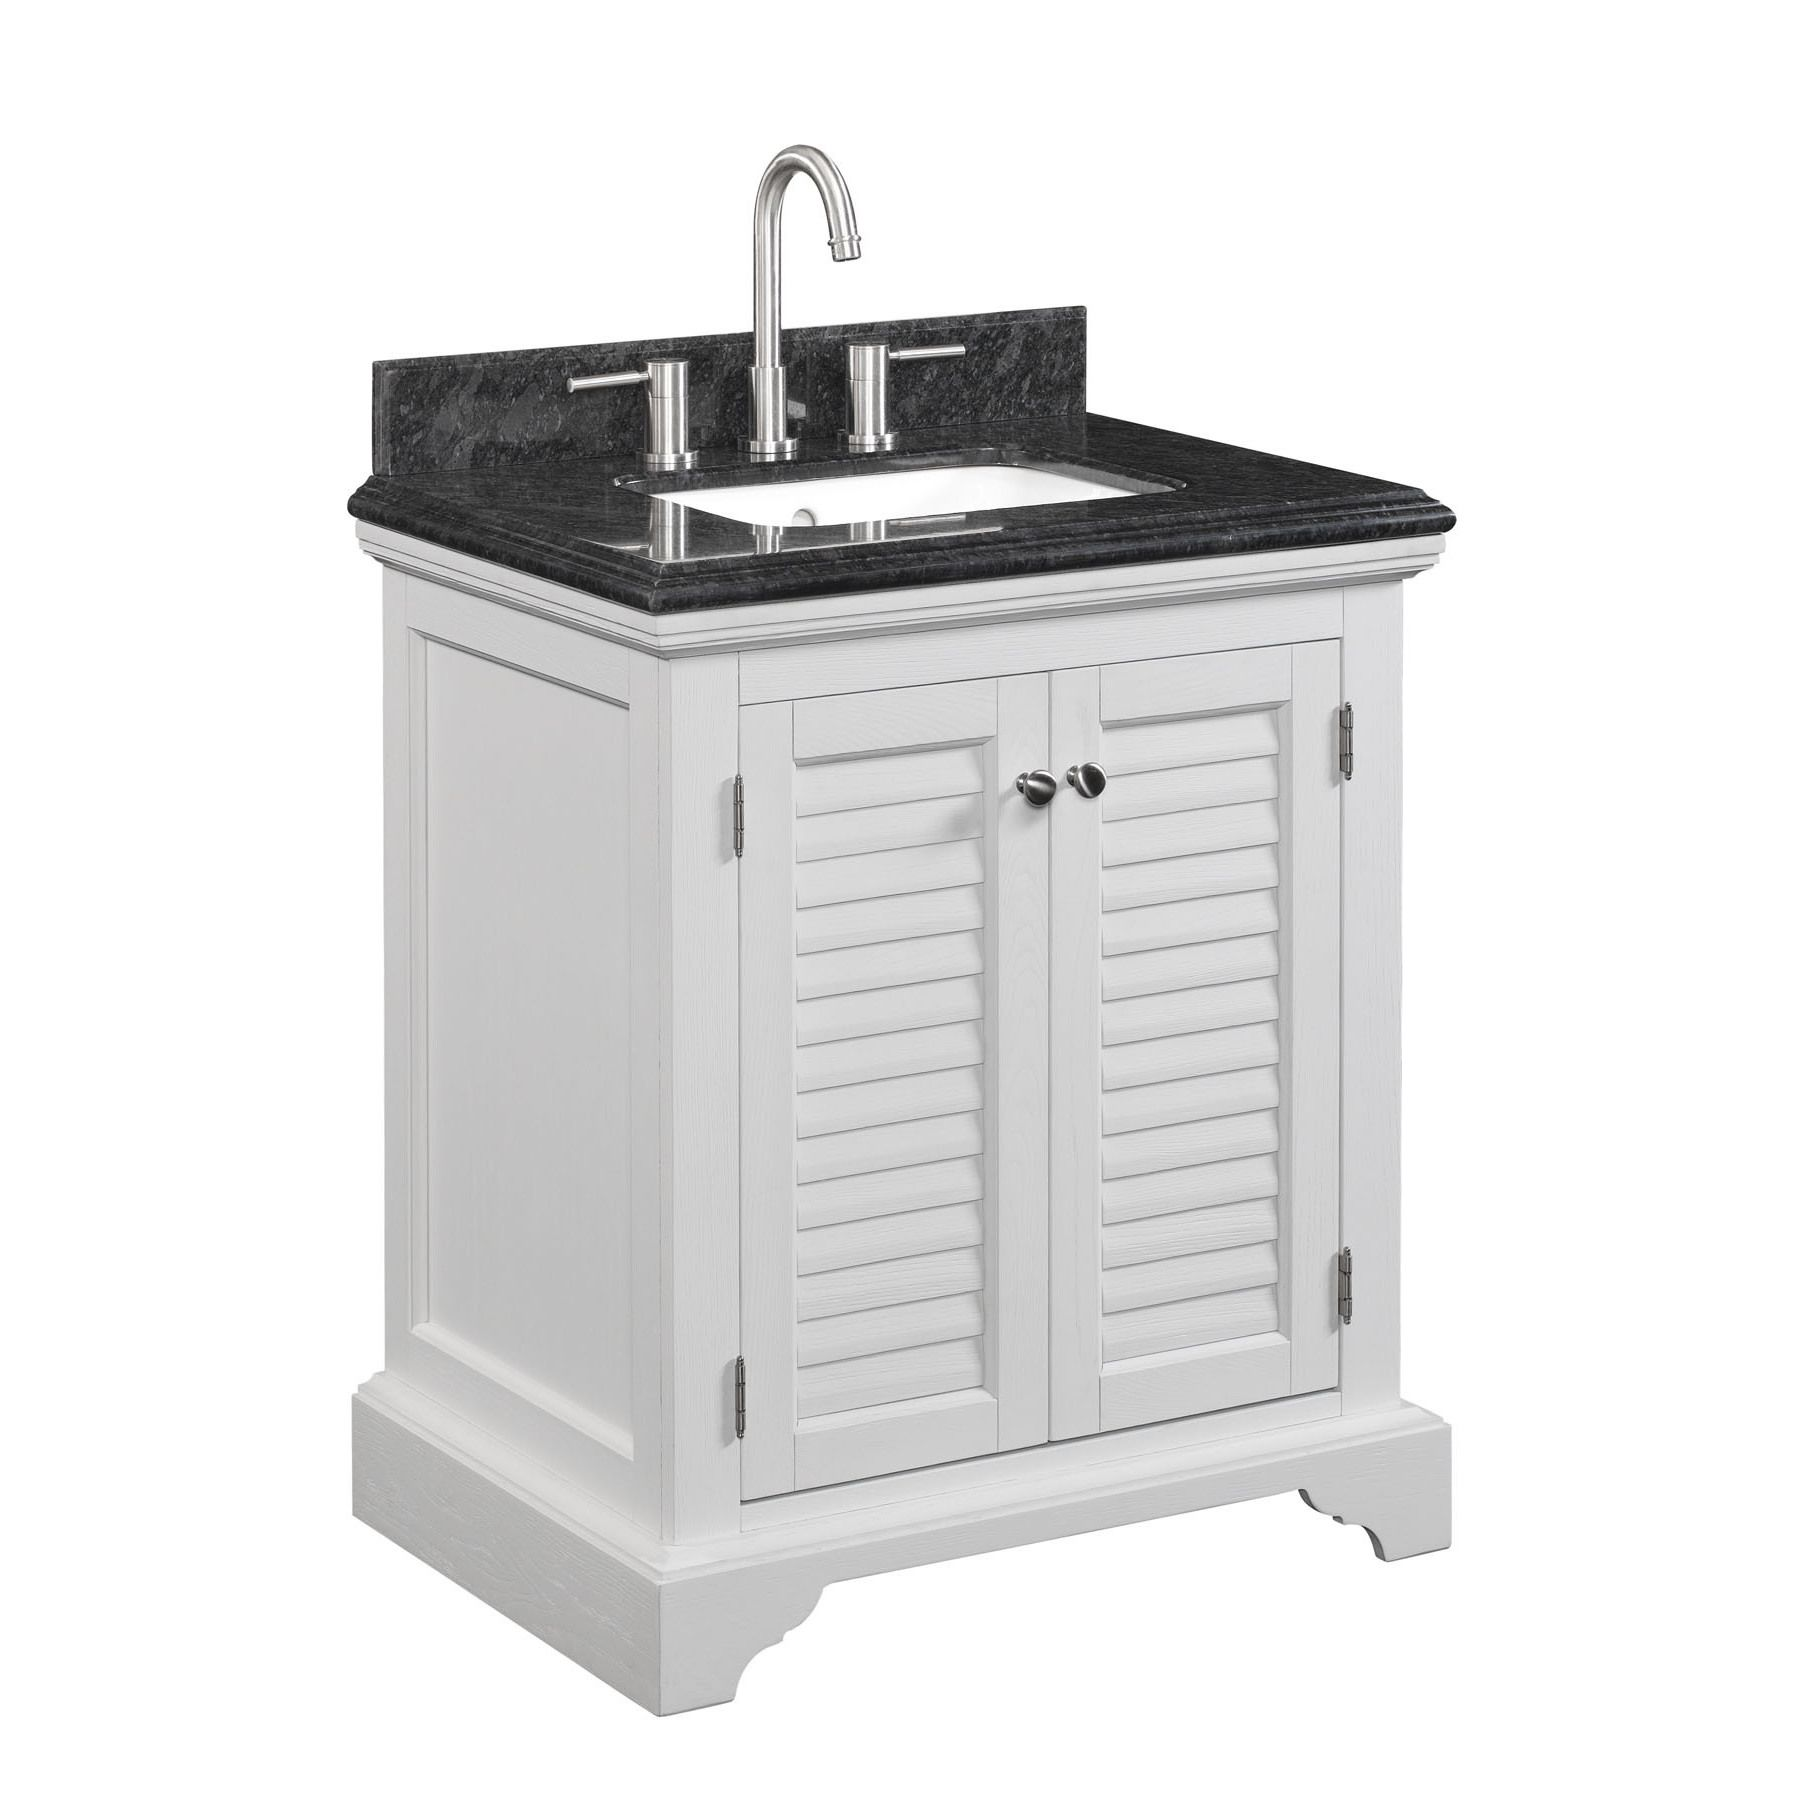 Key West 30 Inch Freestanding Undermount Single Integrated Sink